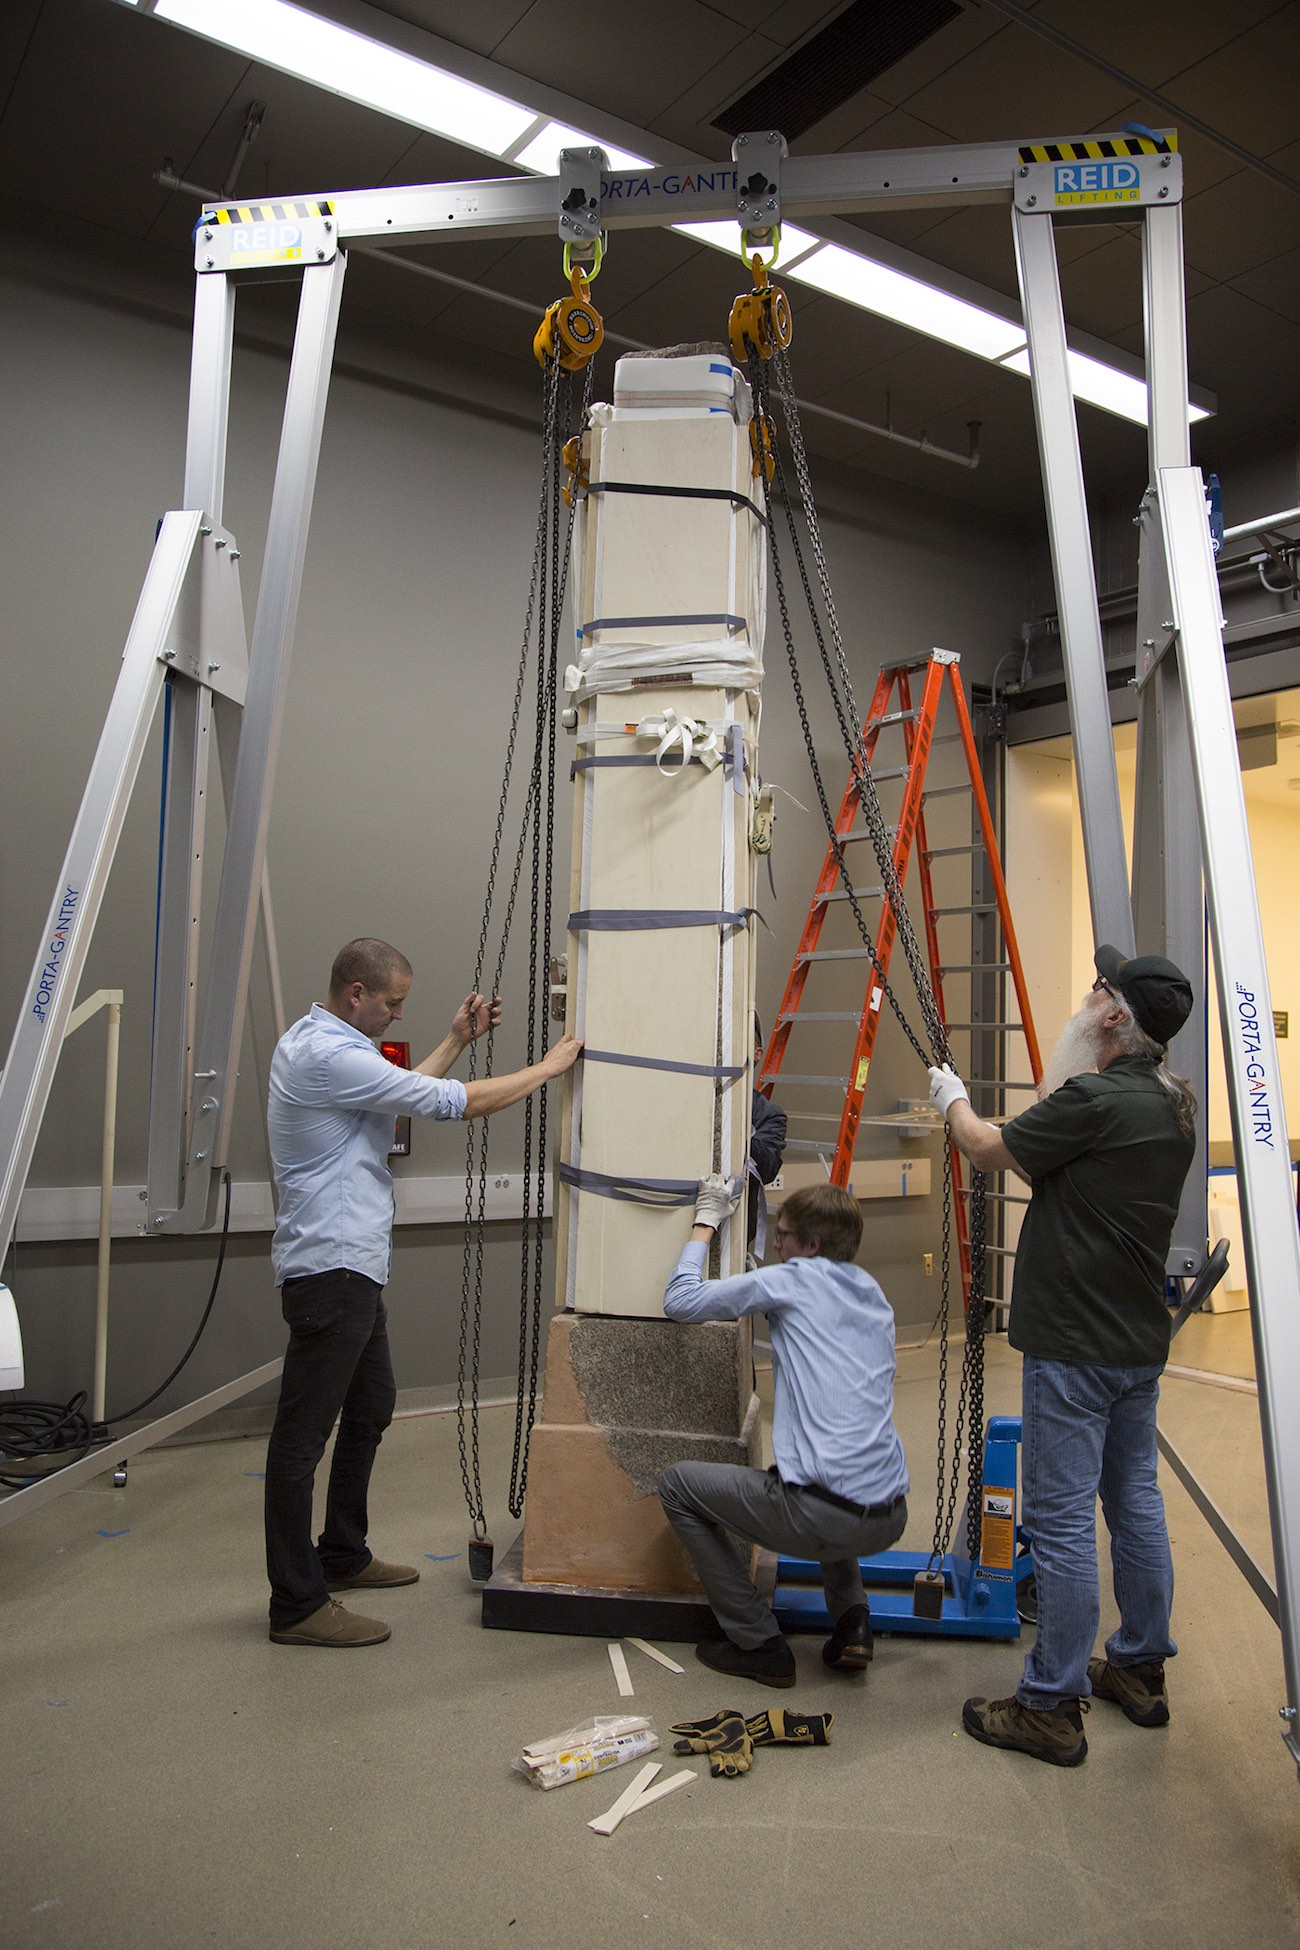 A stone obelisk, still in its packing materials, is gently guided onto its base by three men in a large, fluorescent-lit room